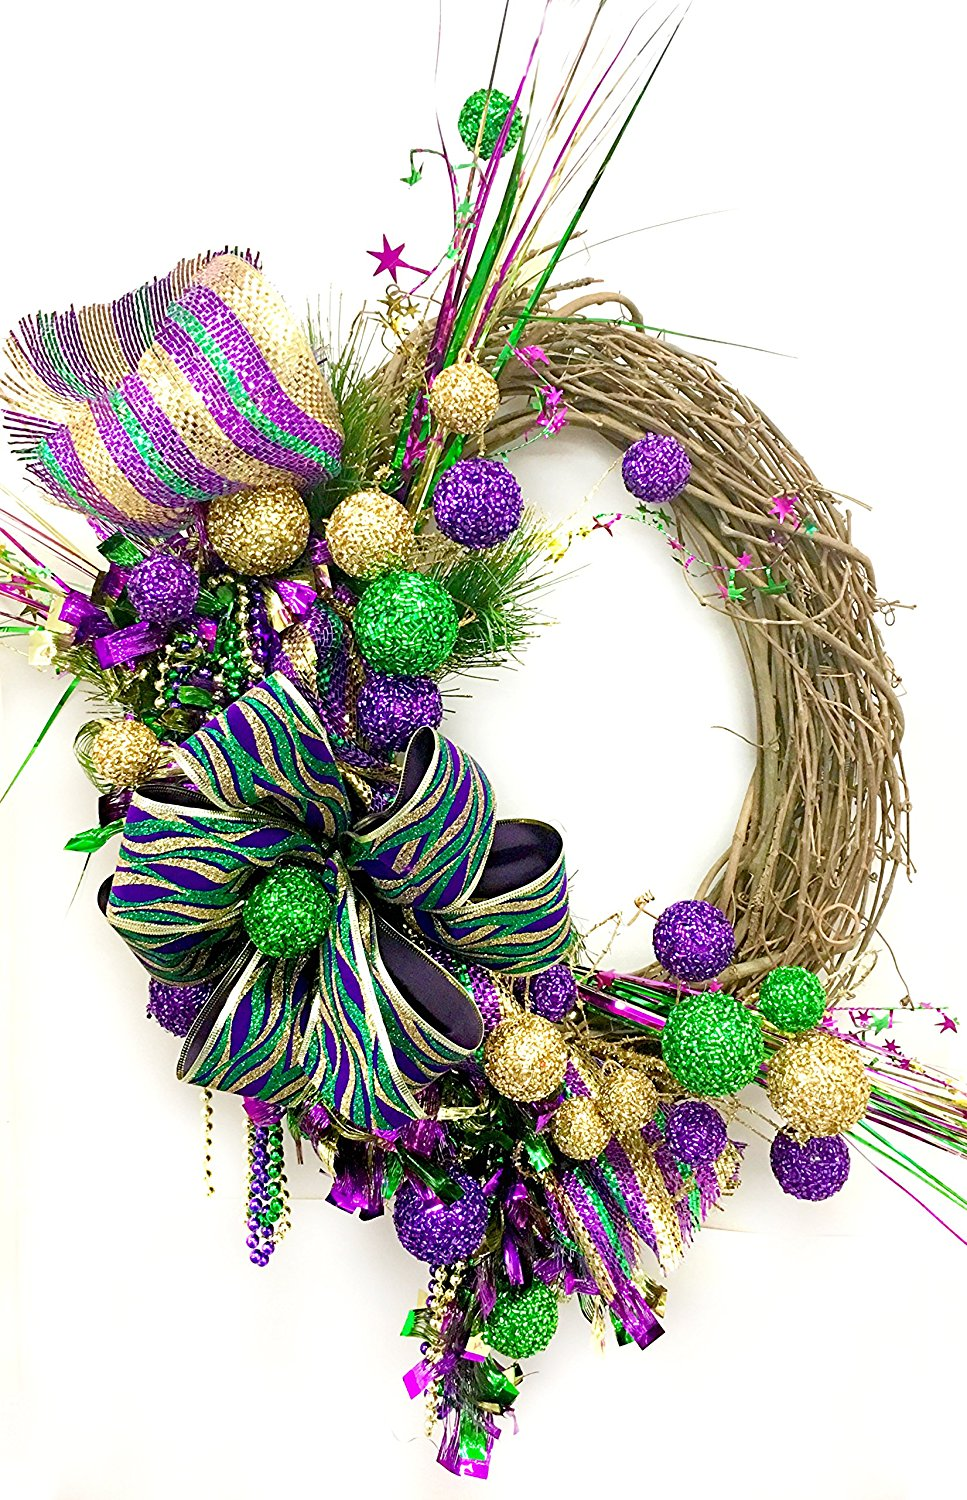 word-image-8 Fat Tuesday is Coming! 11 Classy Mardis Gras Wreaths for Your Front Door